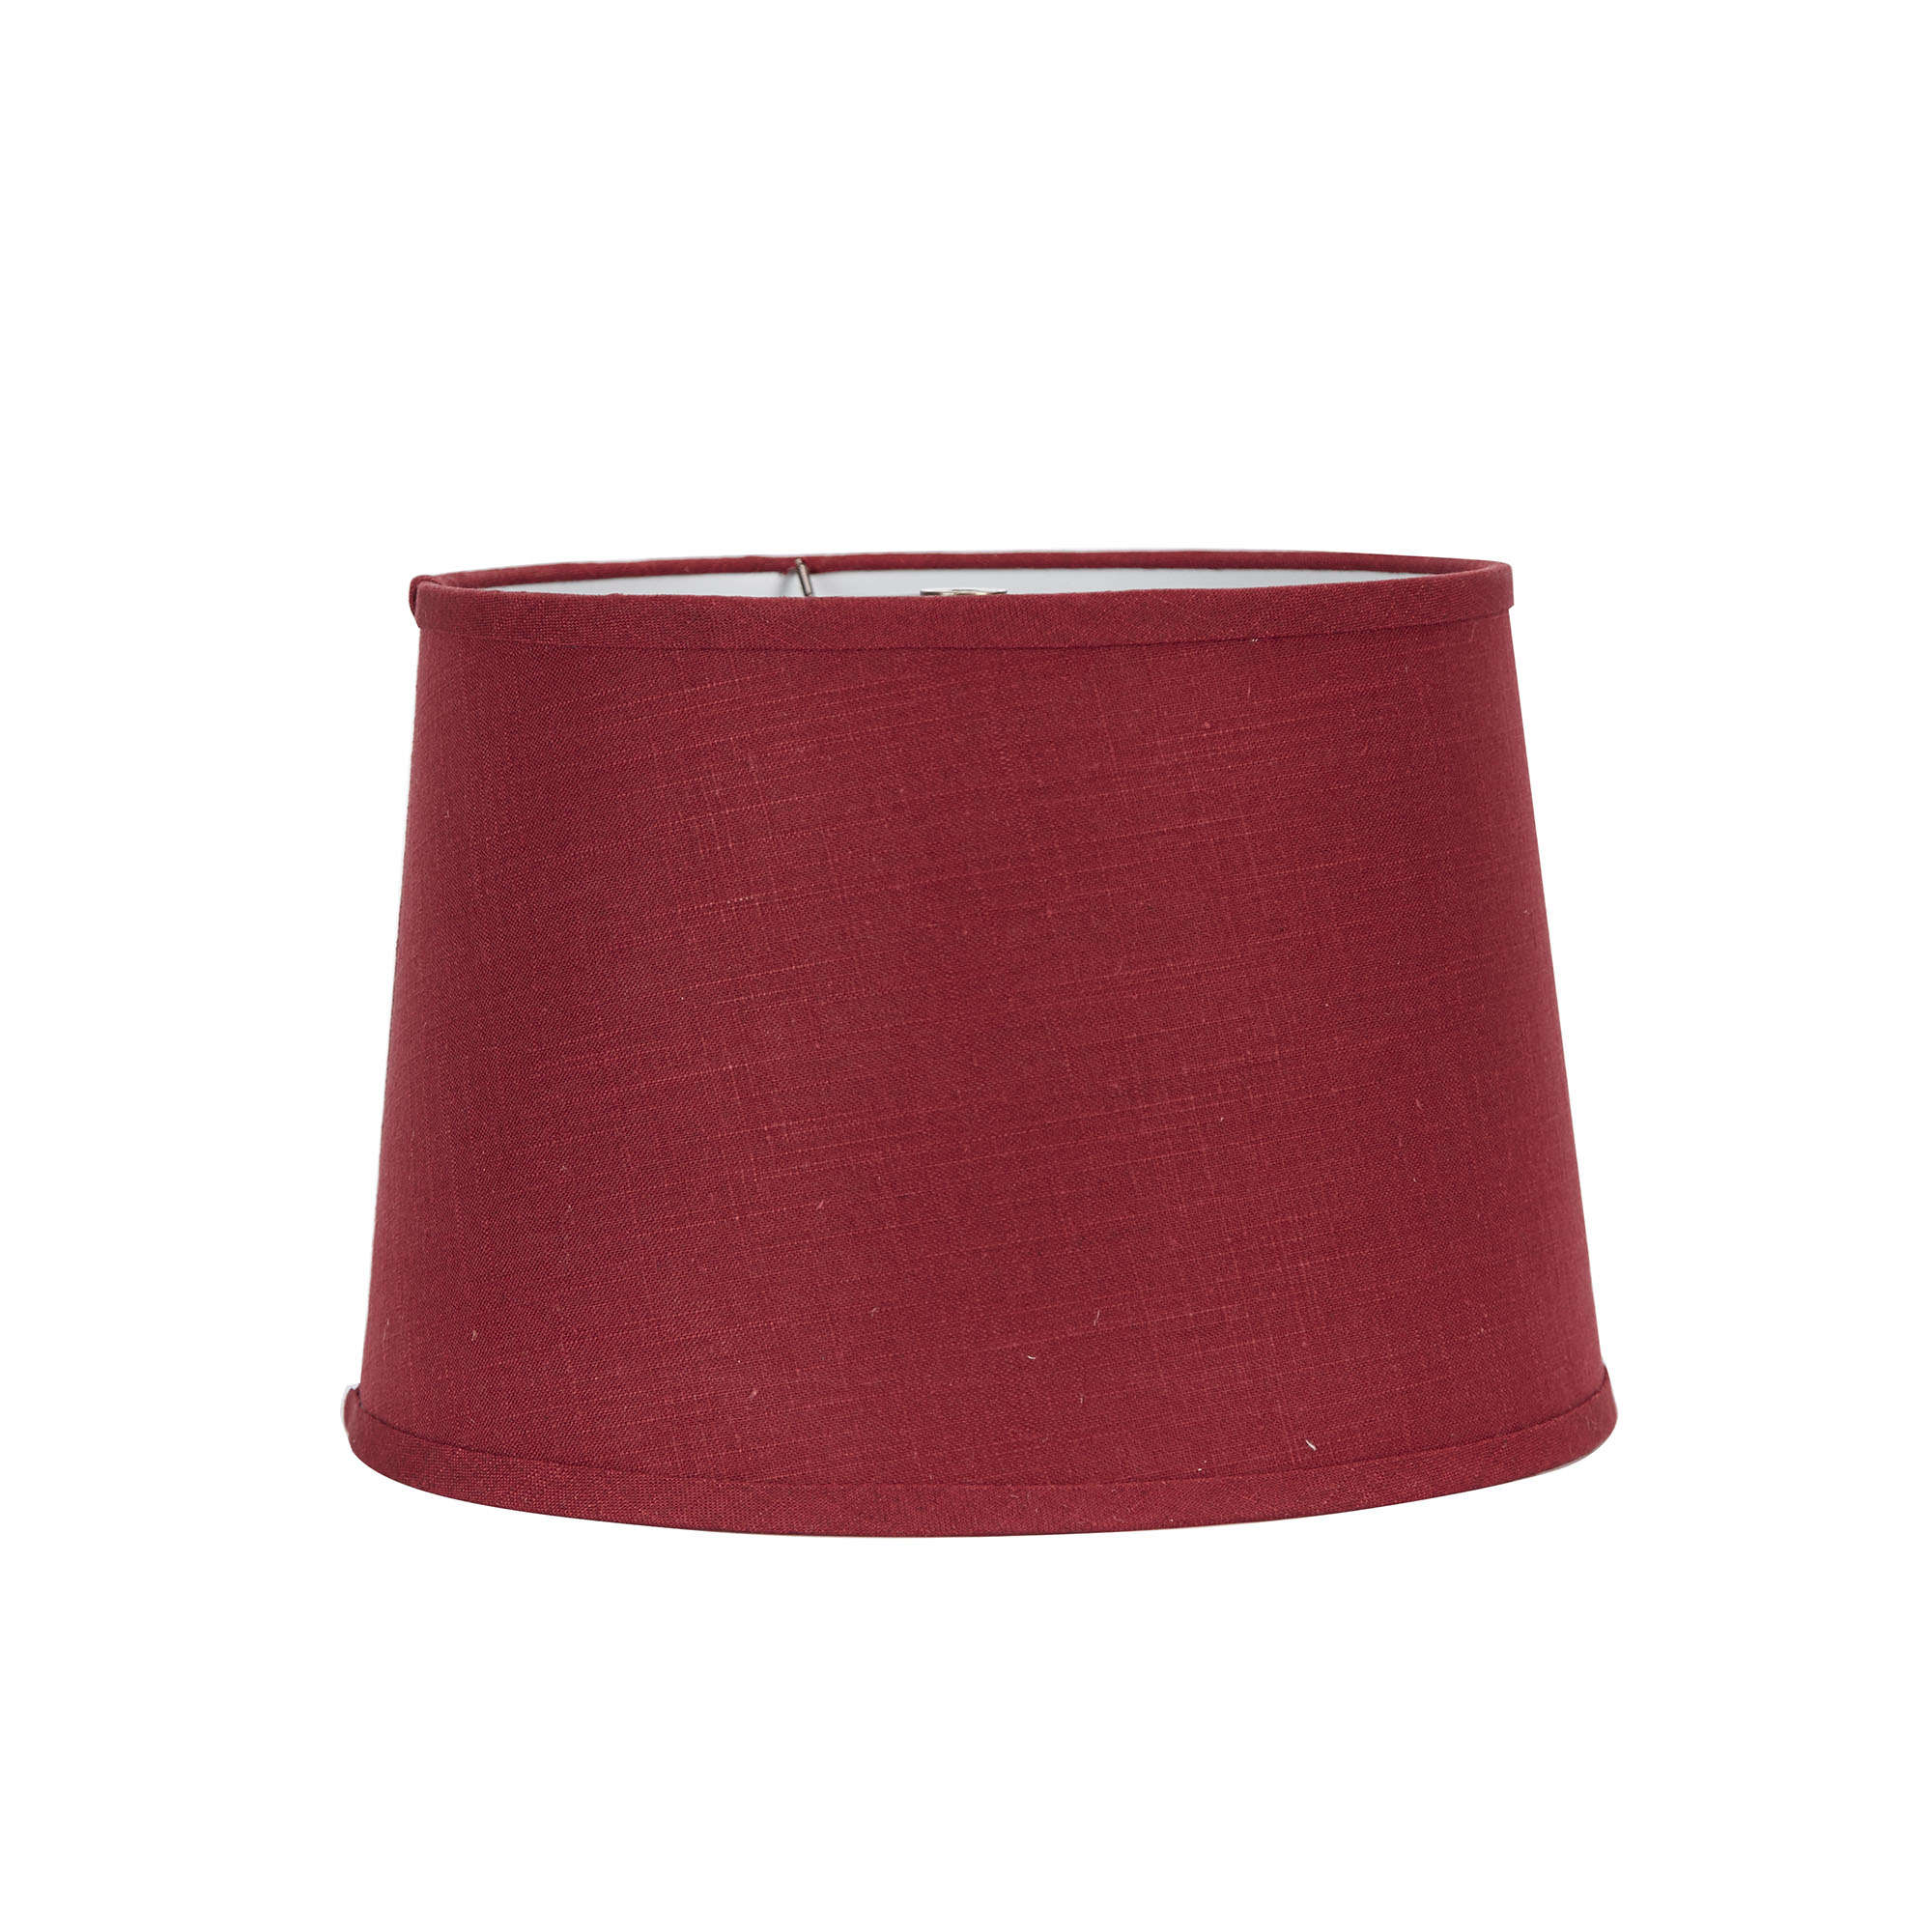 Perfect Classic Drum Lamp Shade, Multiple Colors (base Not Included)